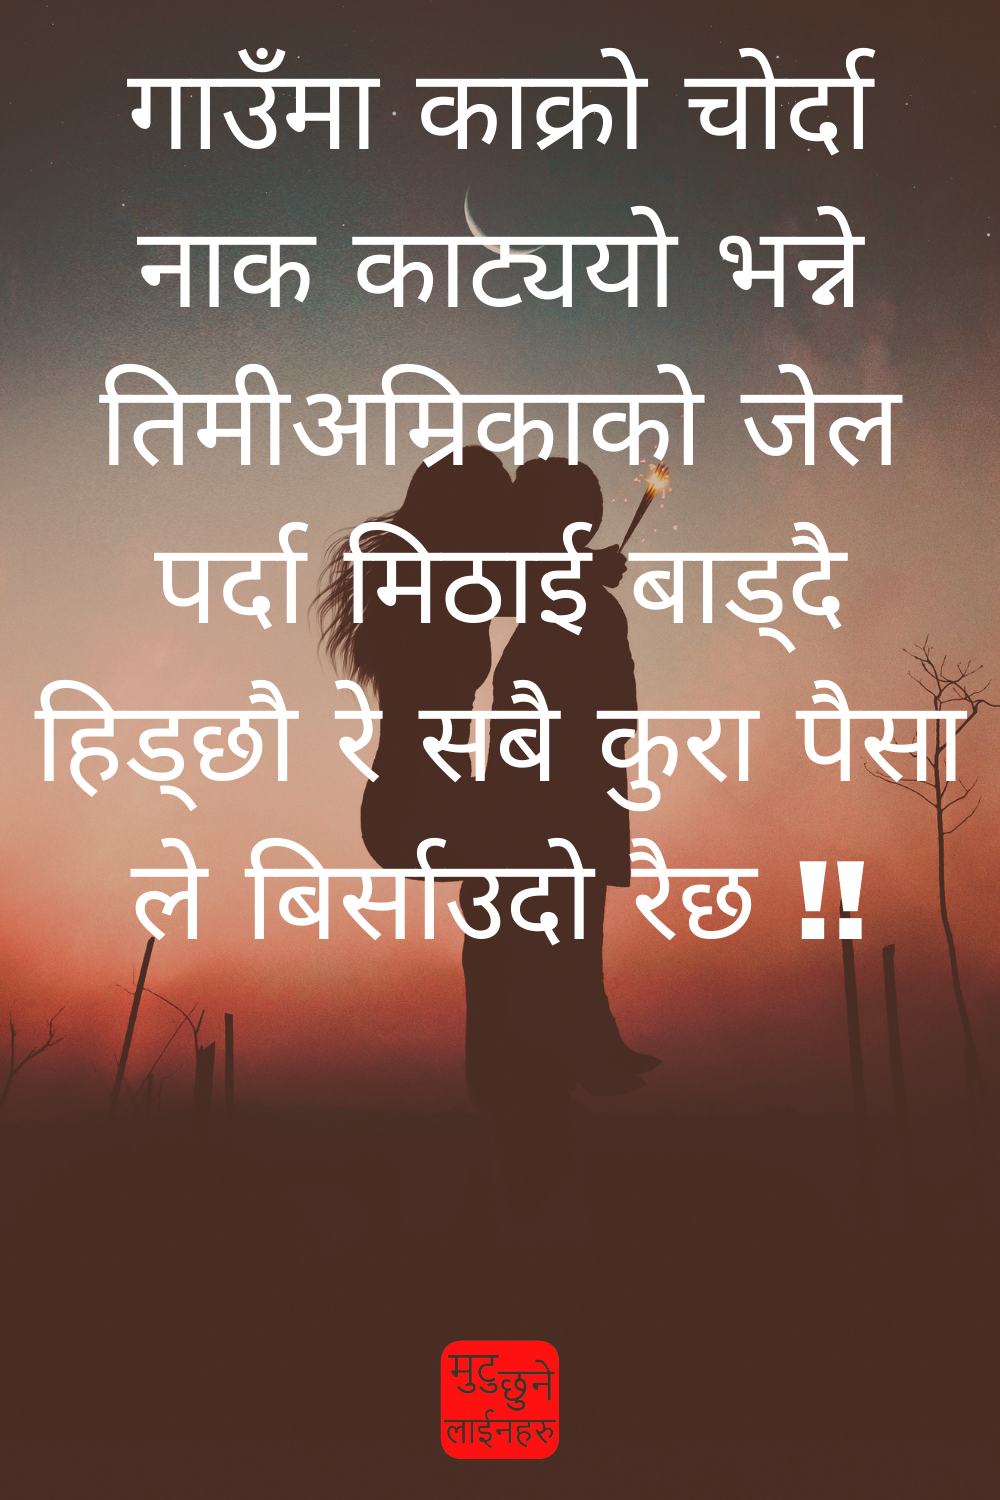 Funny Caption In Nepali : funny, caption, nepali, Nepali, Status, Meaningful, Quotes, About, Life,, Funny, Whatsapp, Status,